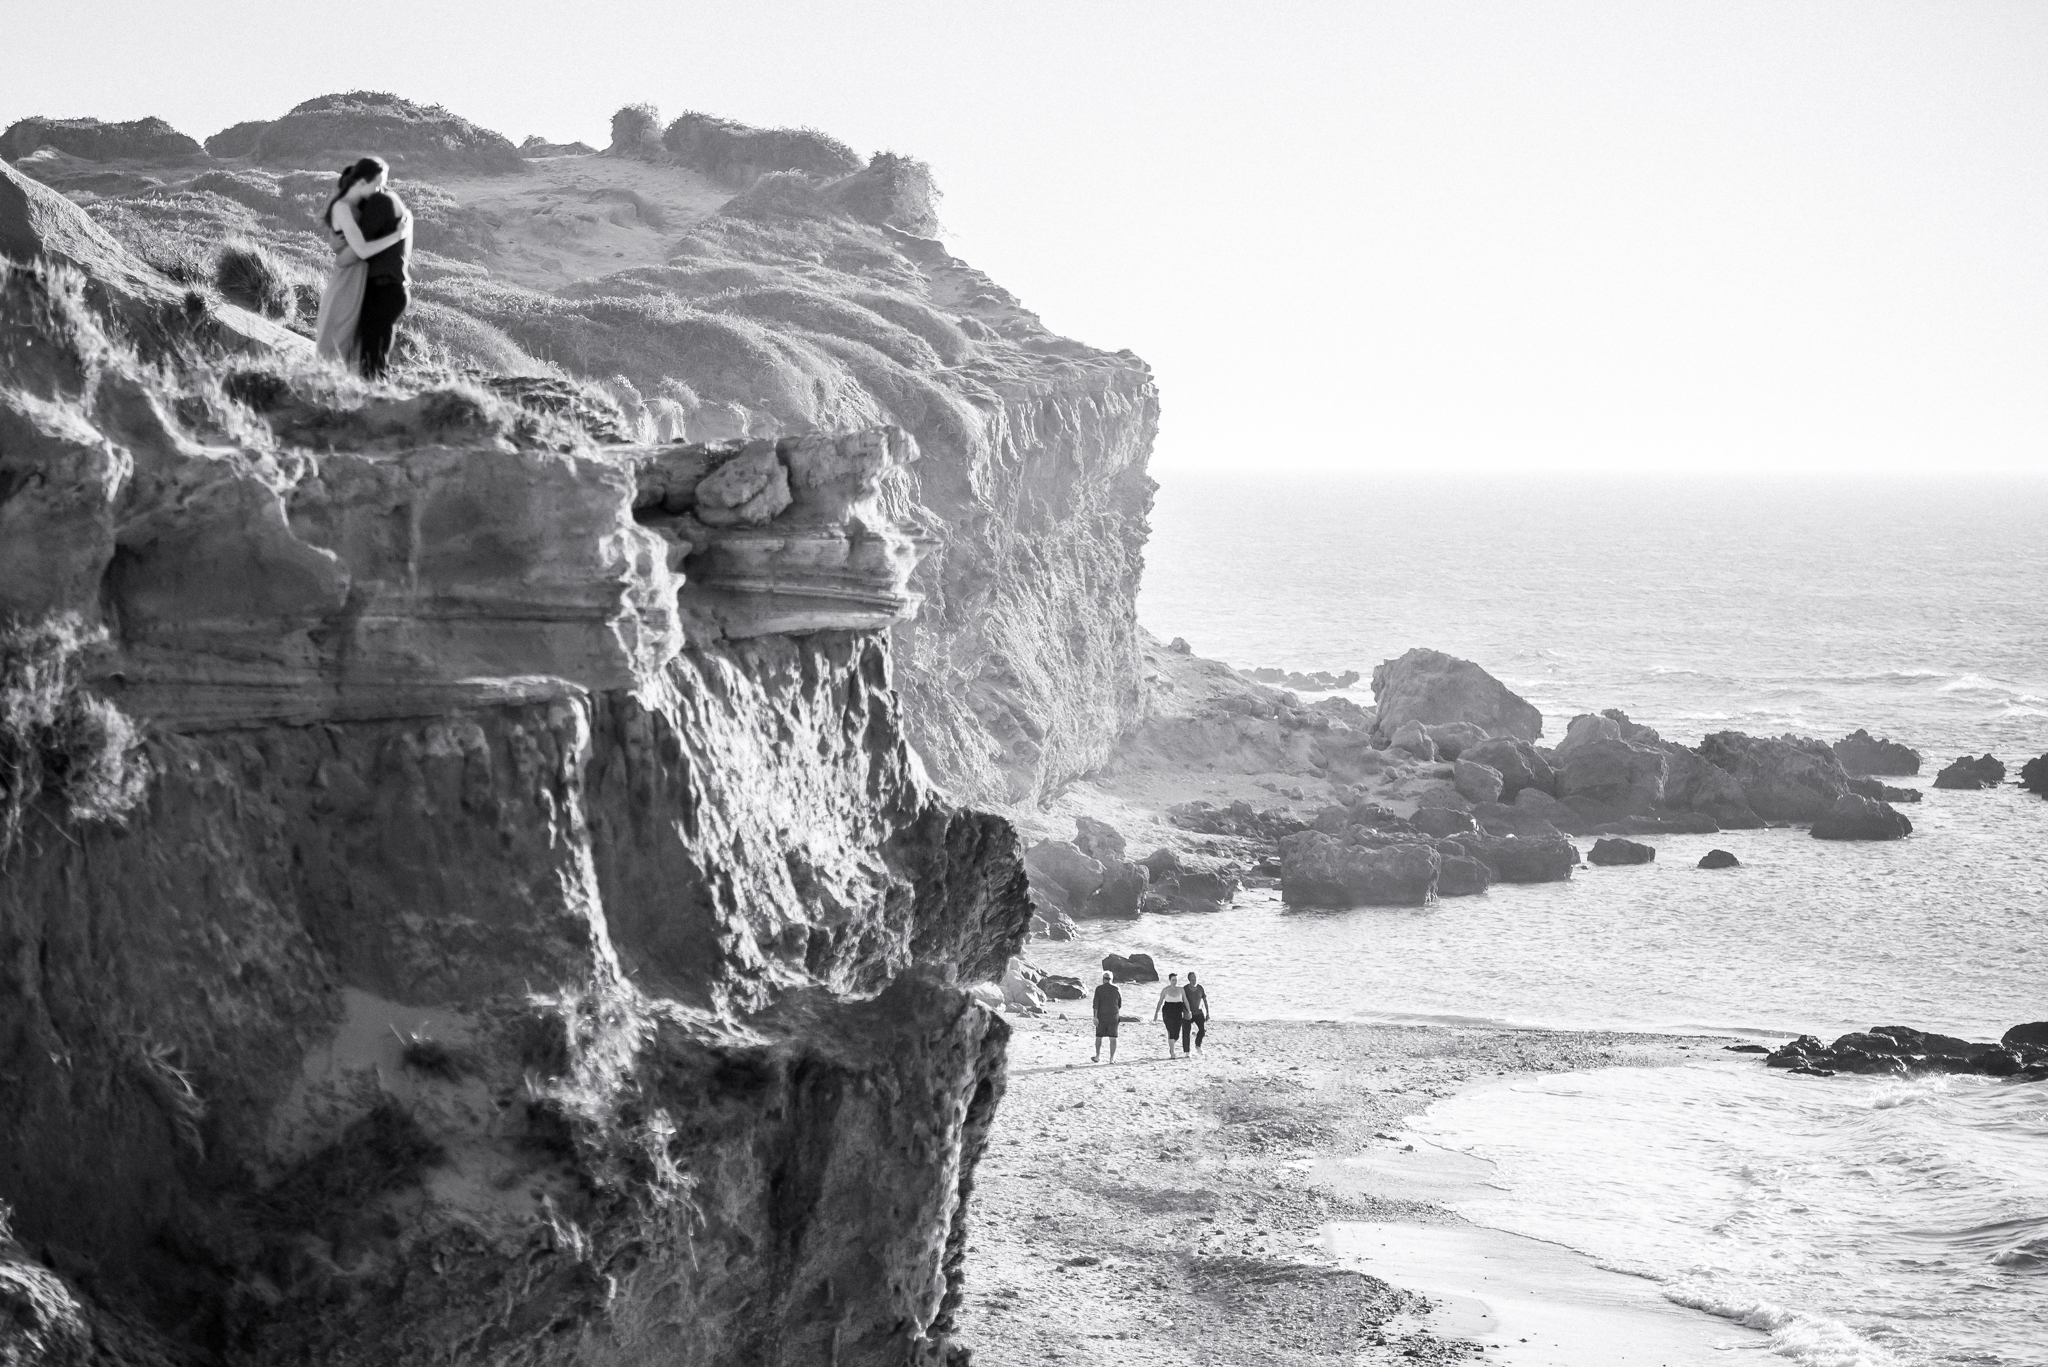 Cliffside-beach-engagement-session-hadera-israel-kate-giryes-photography-9162.jpg